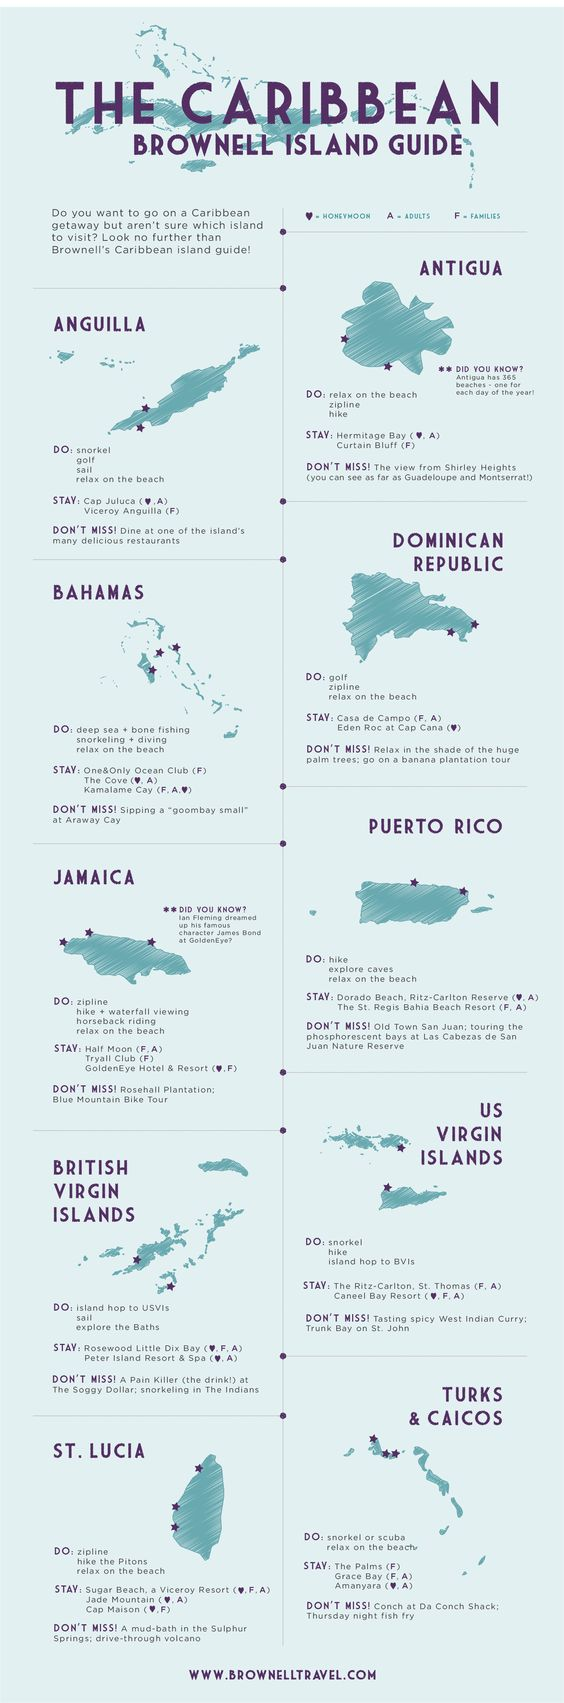 Caribbean Island Guide - pick the island that fits your travel style! http://www.brownelltravel.com/caribbean-island-guide-2/